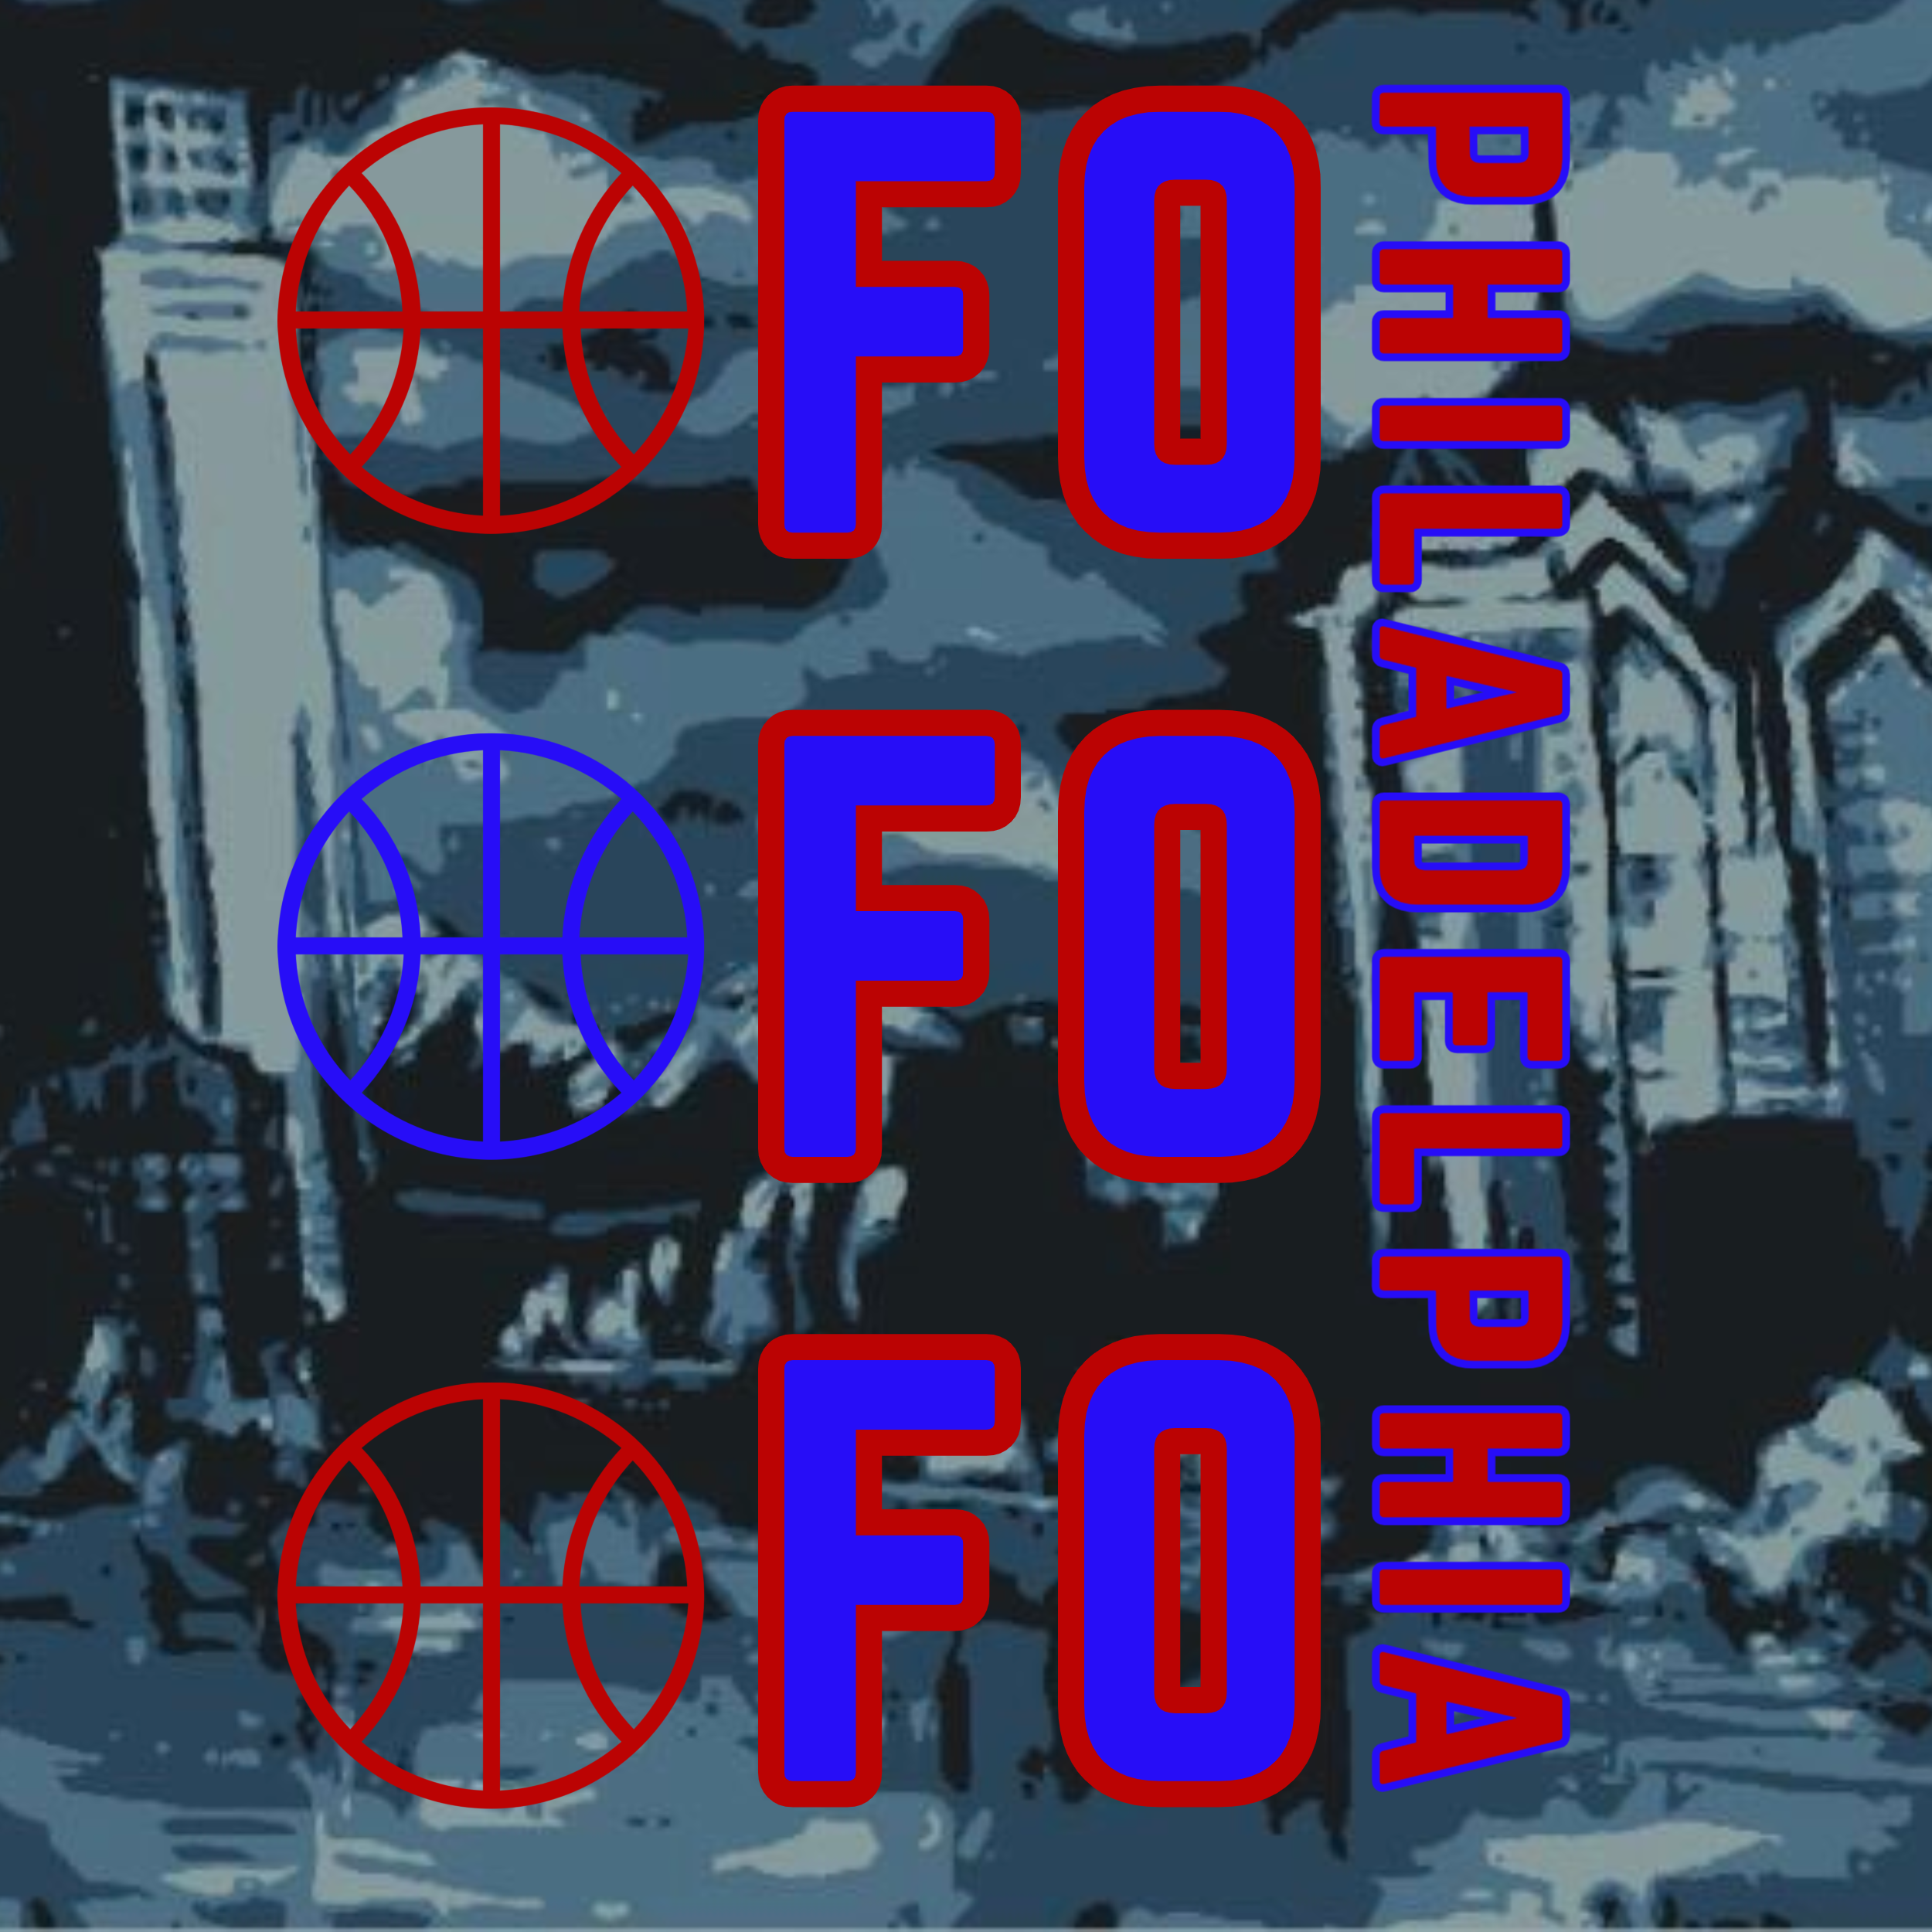 FoFoFOLogo9a.png